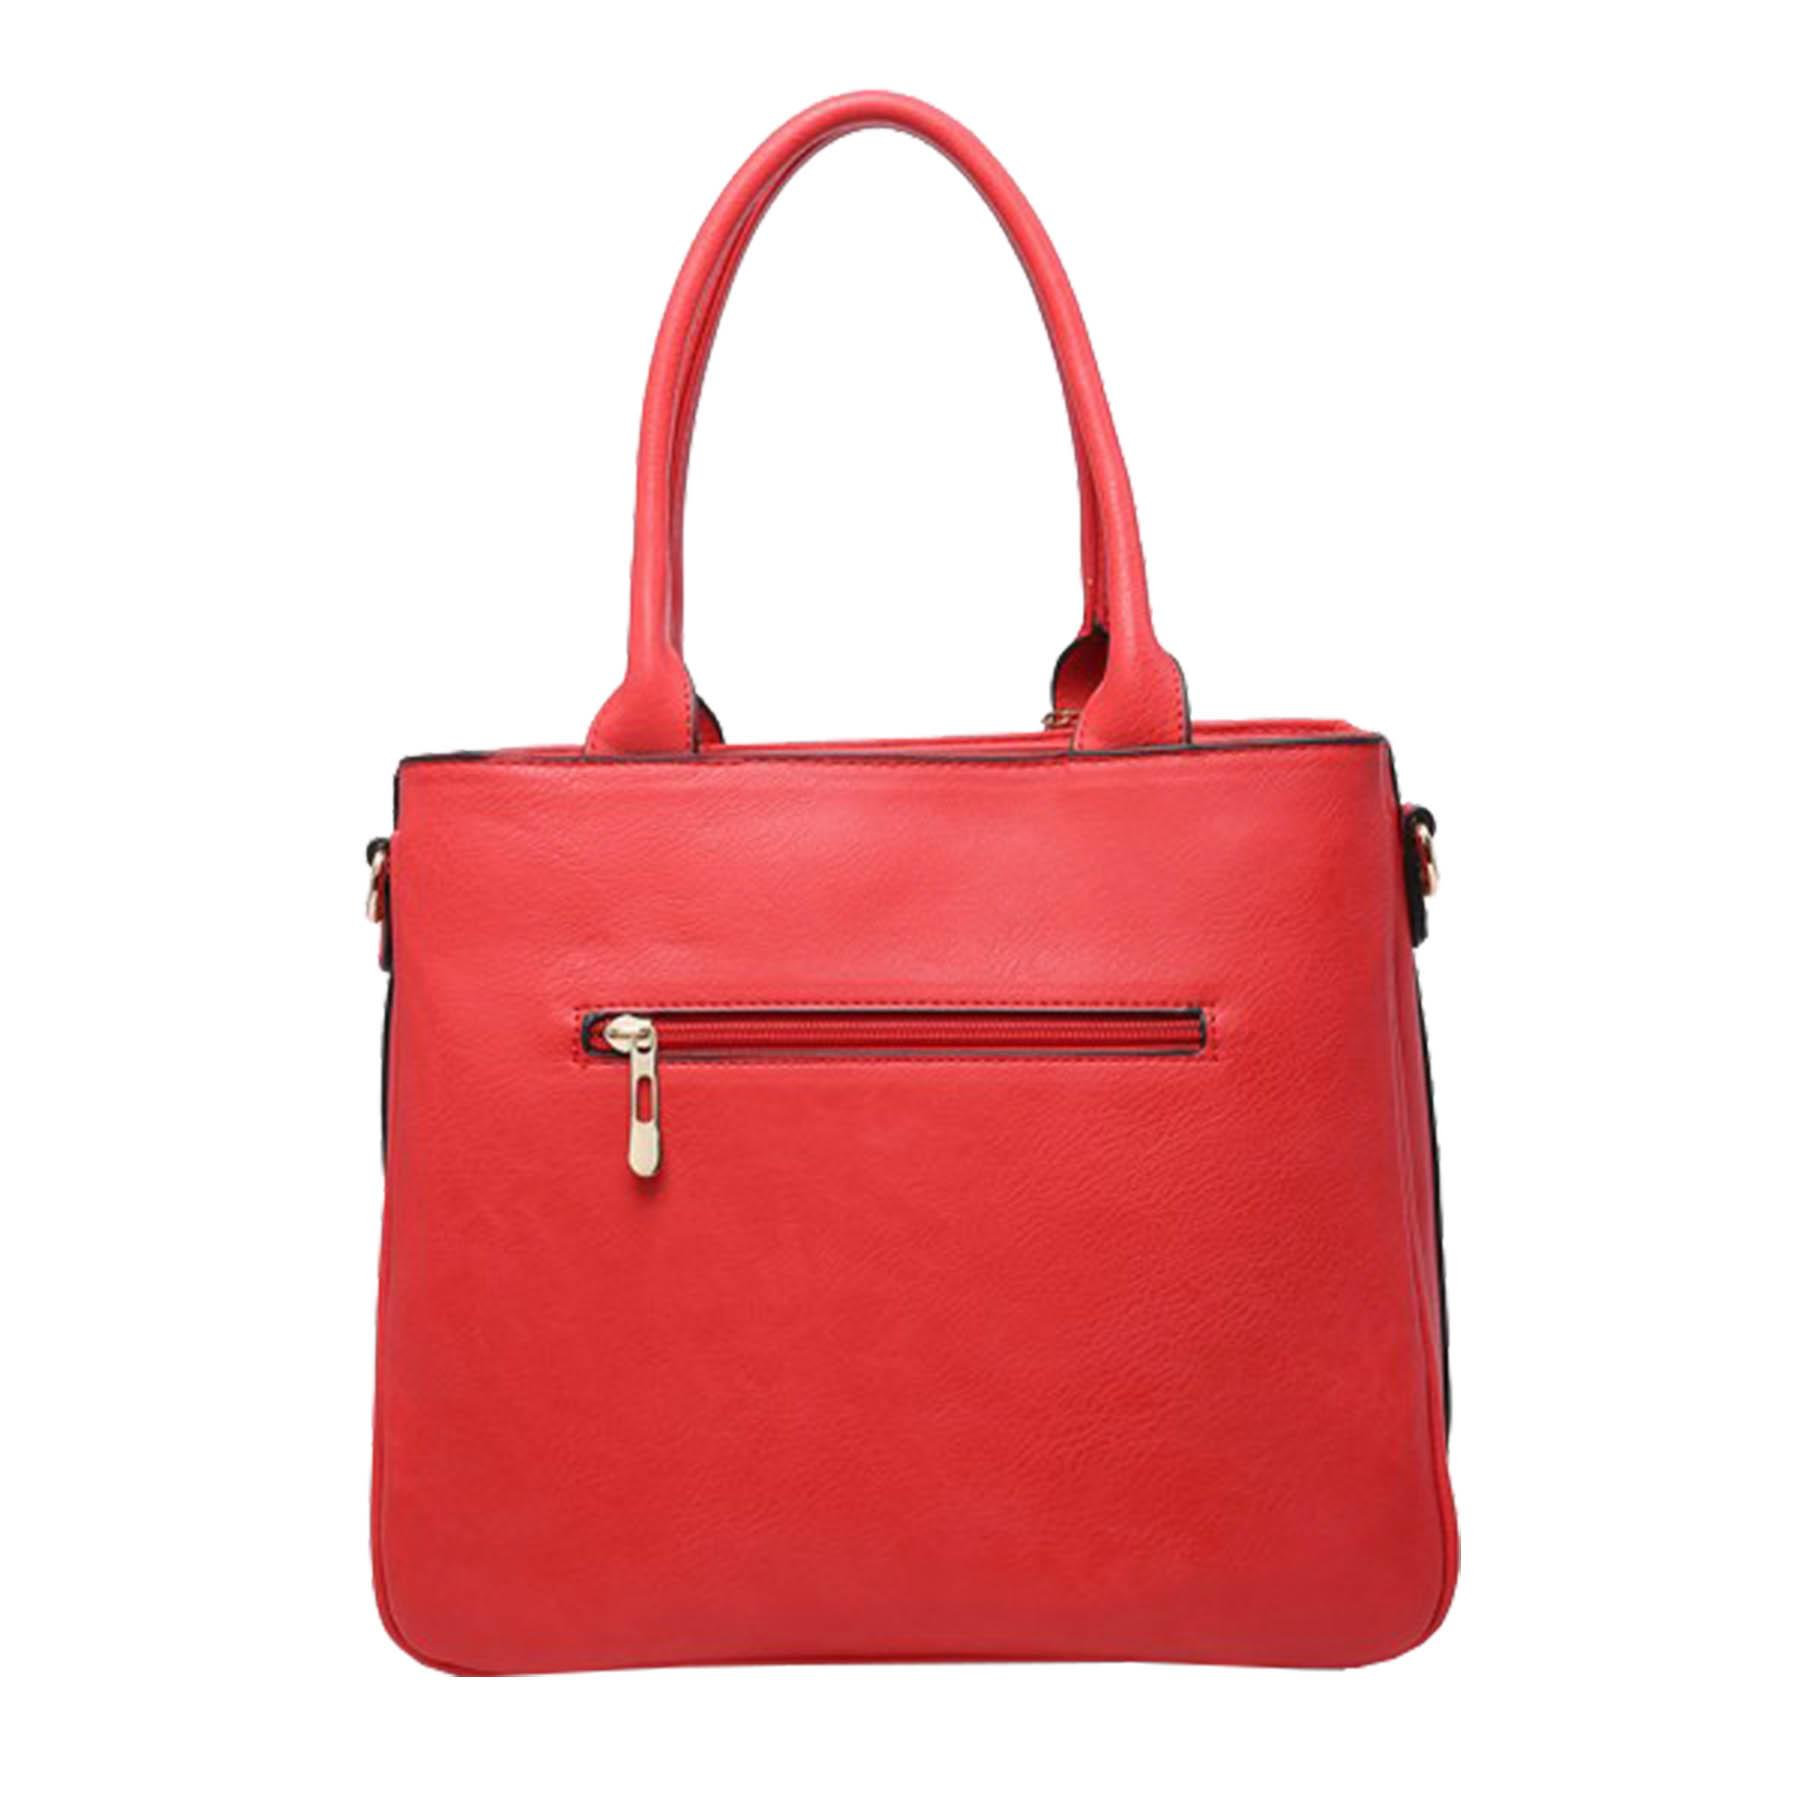 New-Synthetic-Leather-Butterfly-Tassel-Charm-Women-s-Shoulder-Tote-Bag thumbnail 10